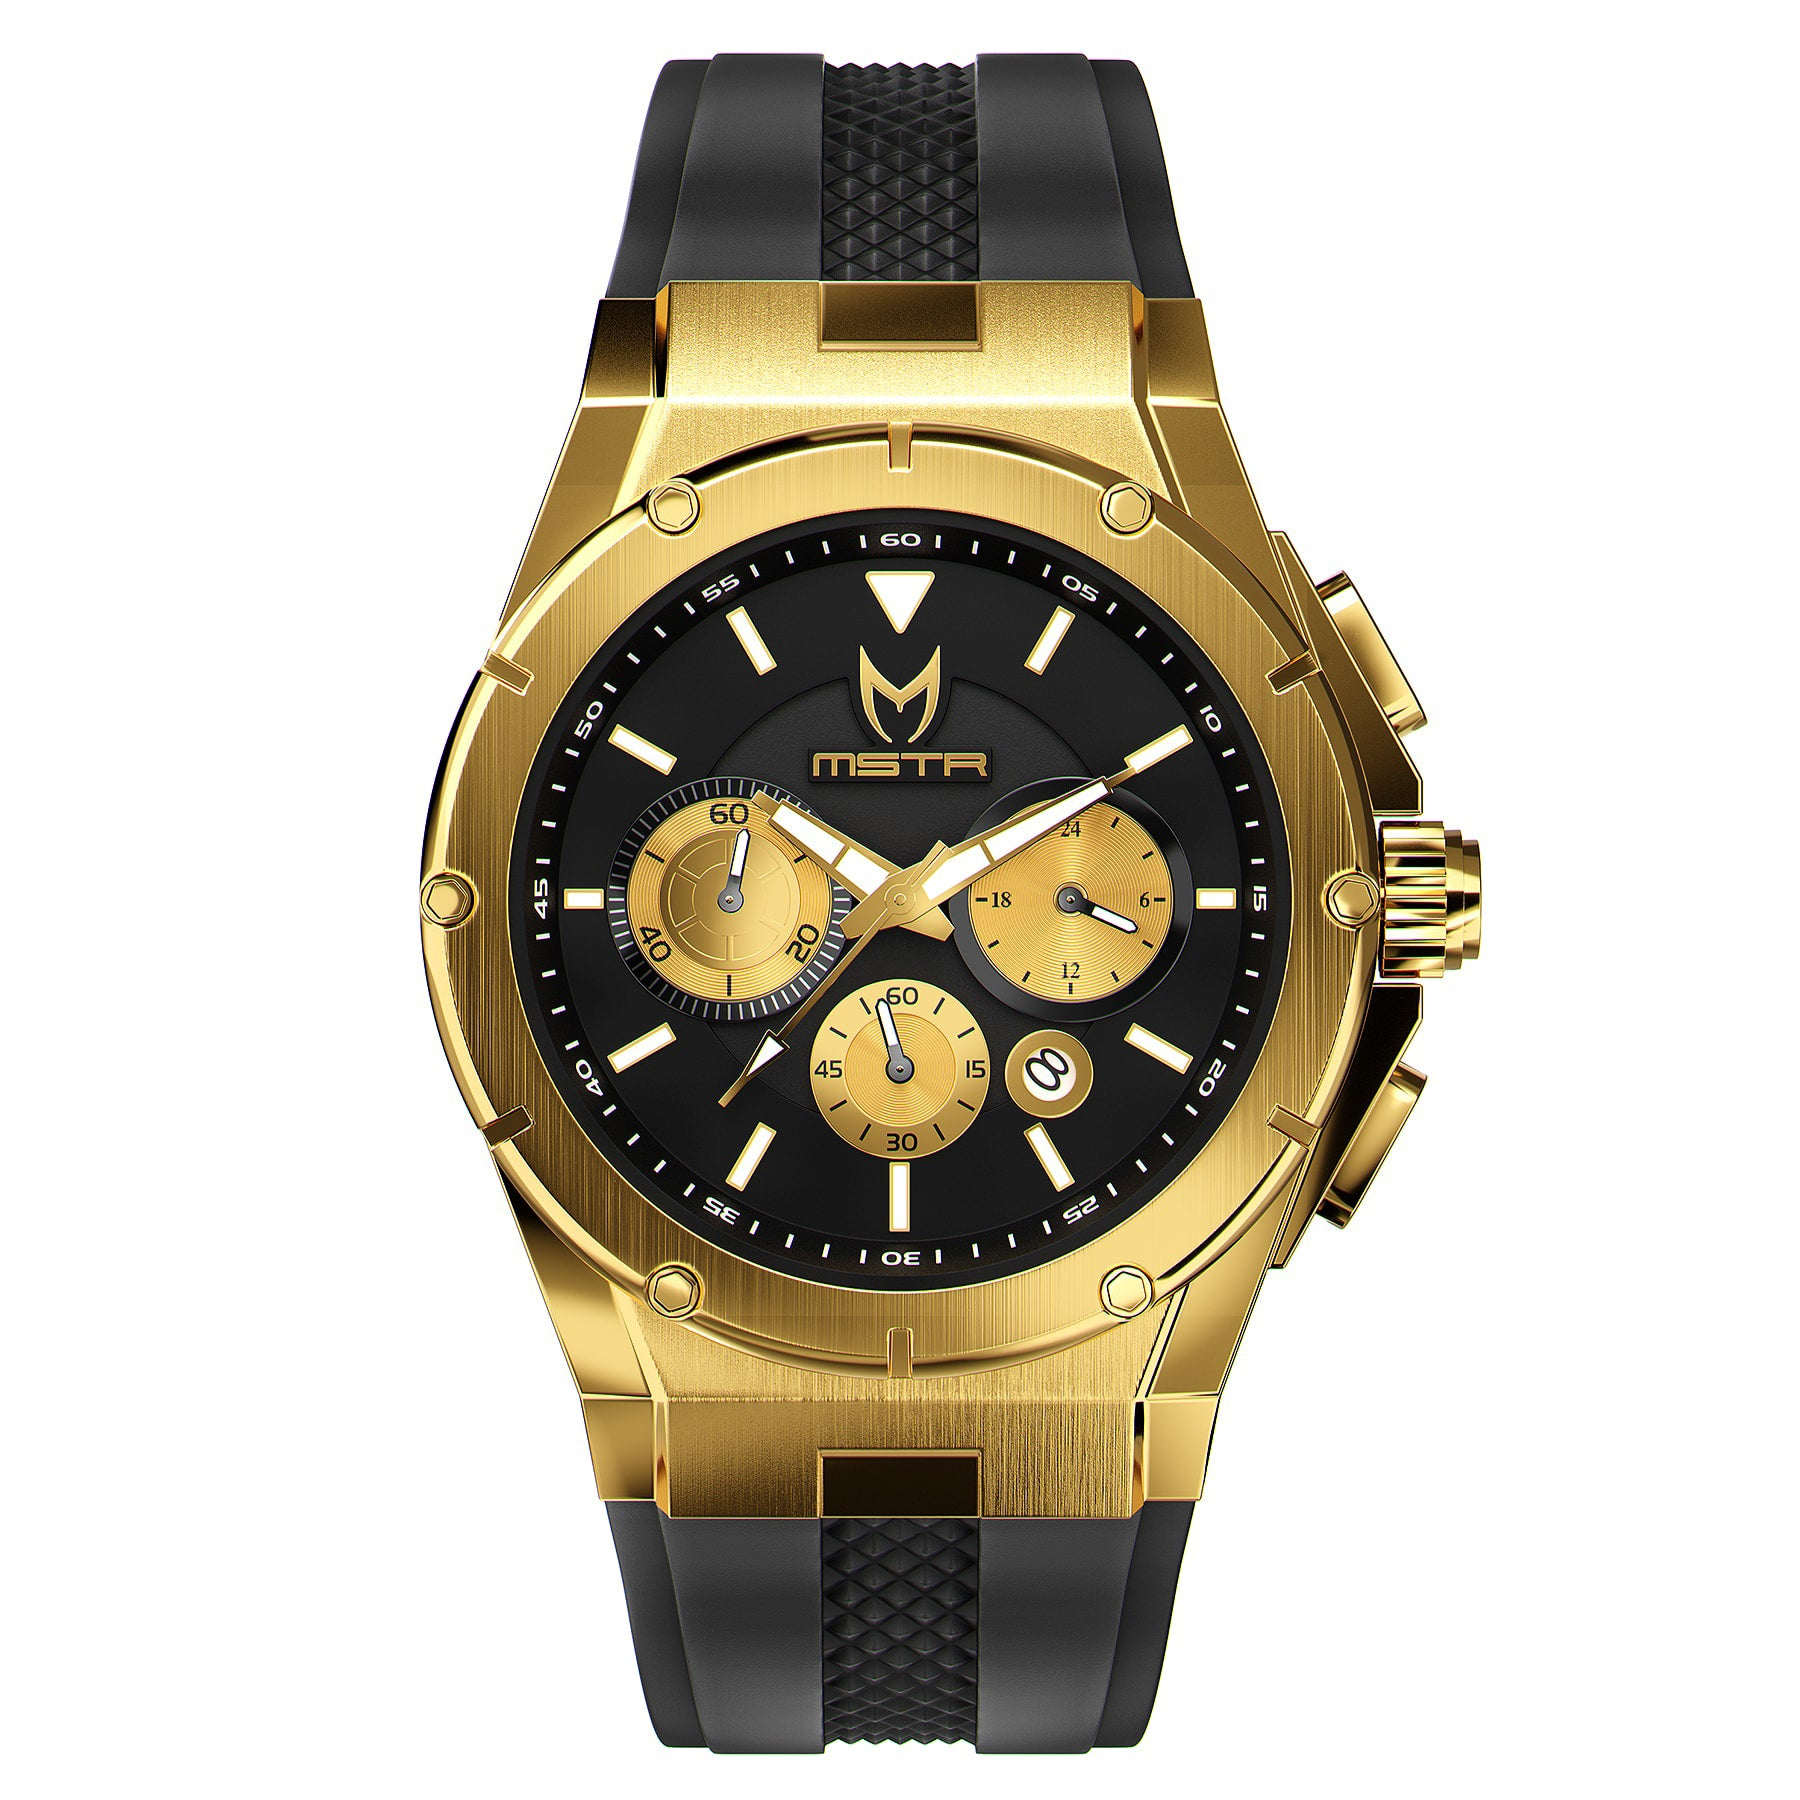 AM254RB- MK3 18K GOLD / BLACK / RUBBER BAND